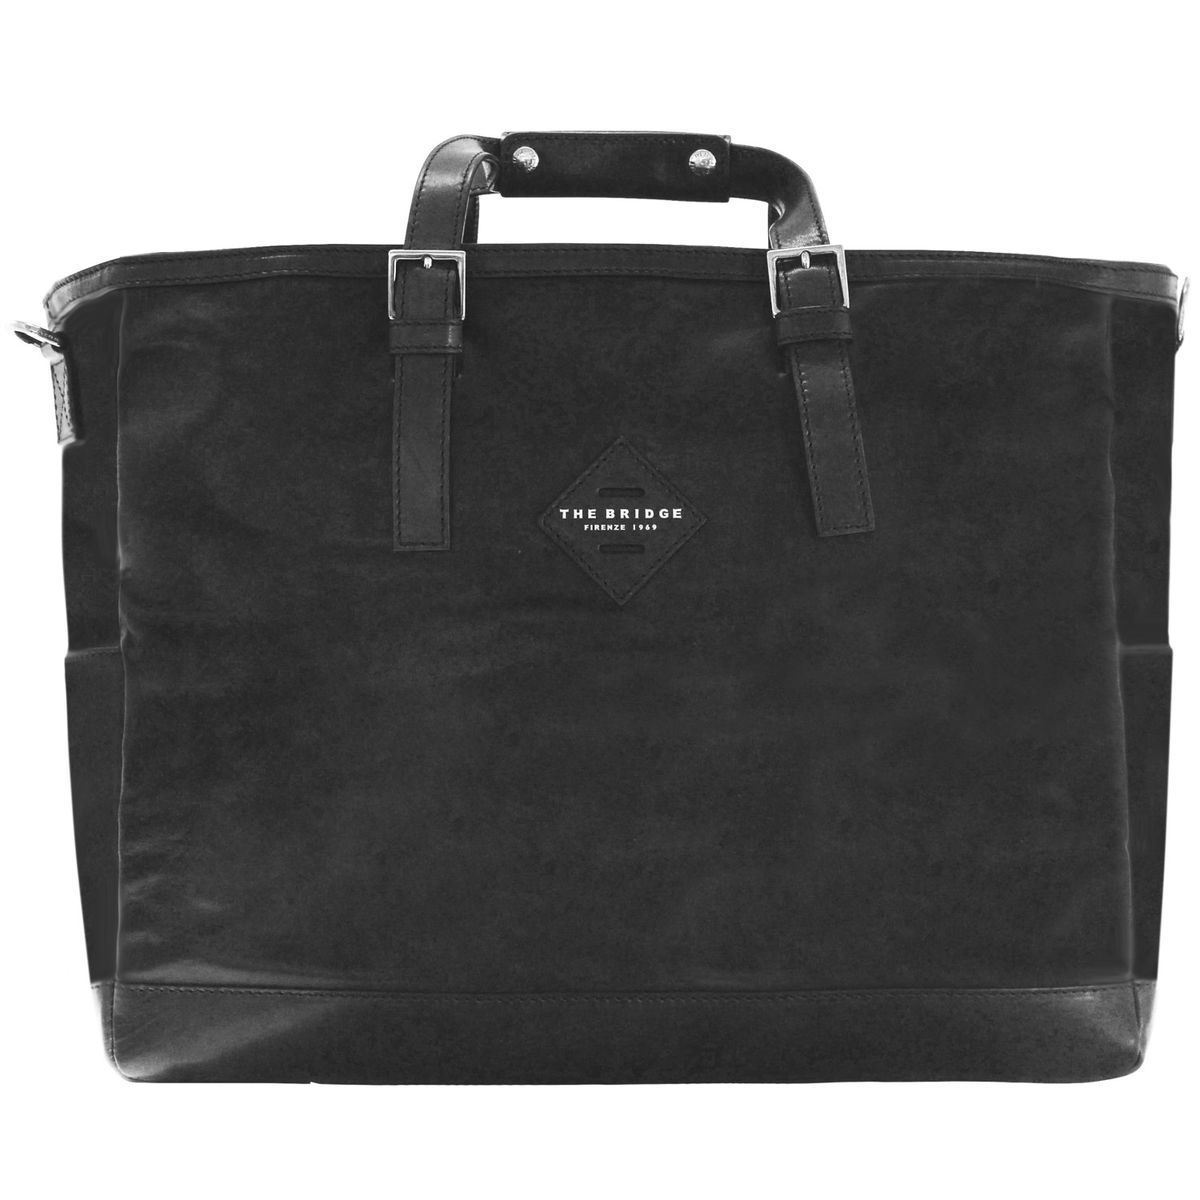 The Bridge Patch Luxe Weekender Tasche 45 cm, black